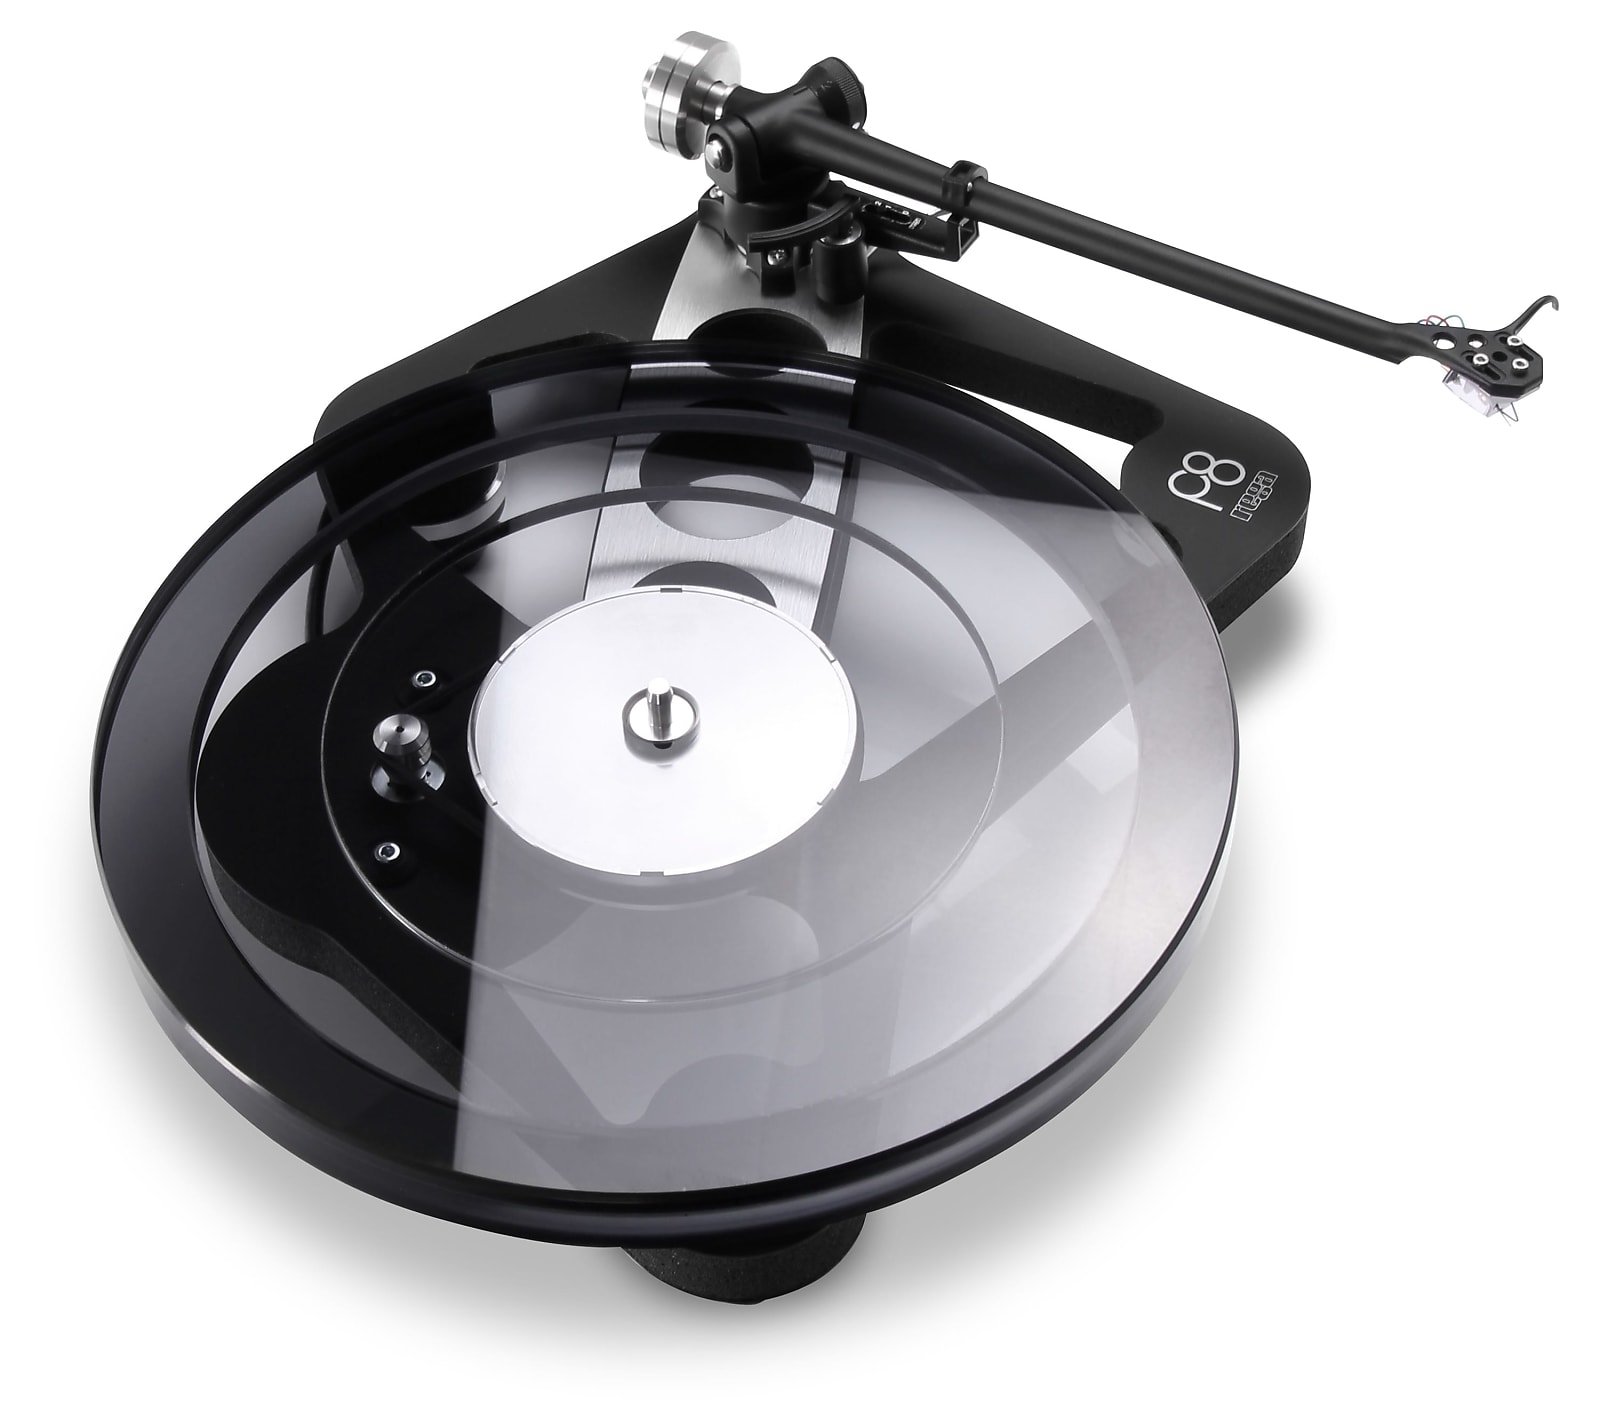 Rega Planar 8 Turntable w/ Neo PSU Power Supply, RB880 Tonearm & Ania Cartridge